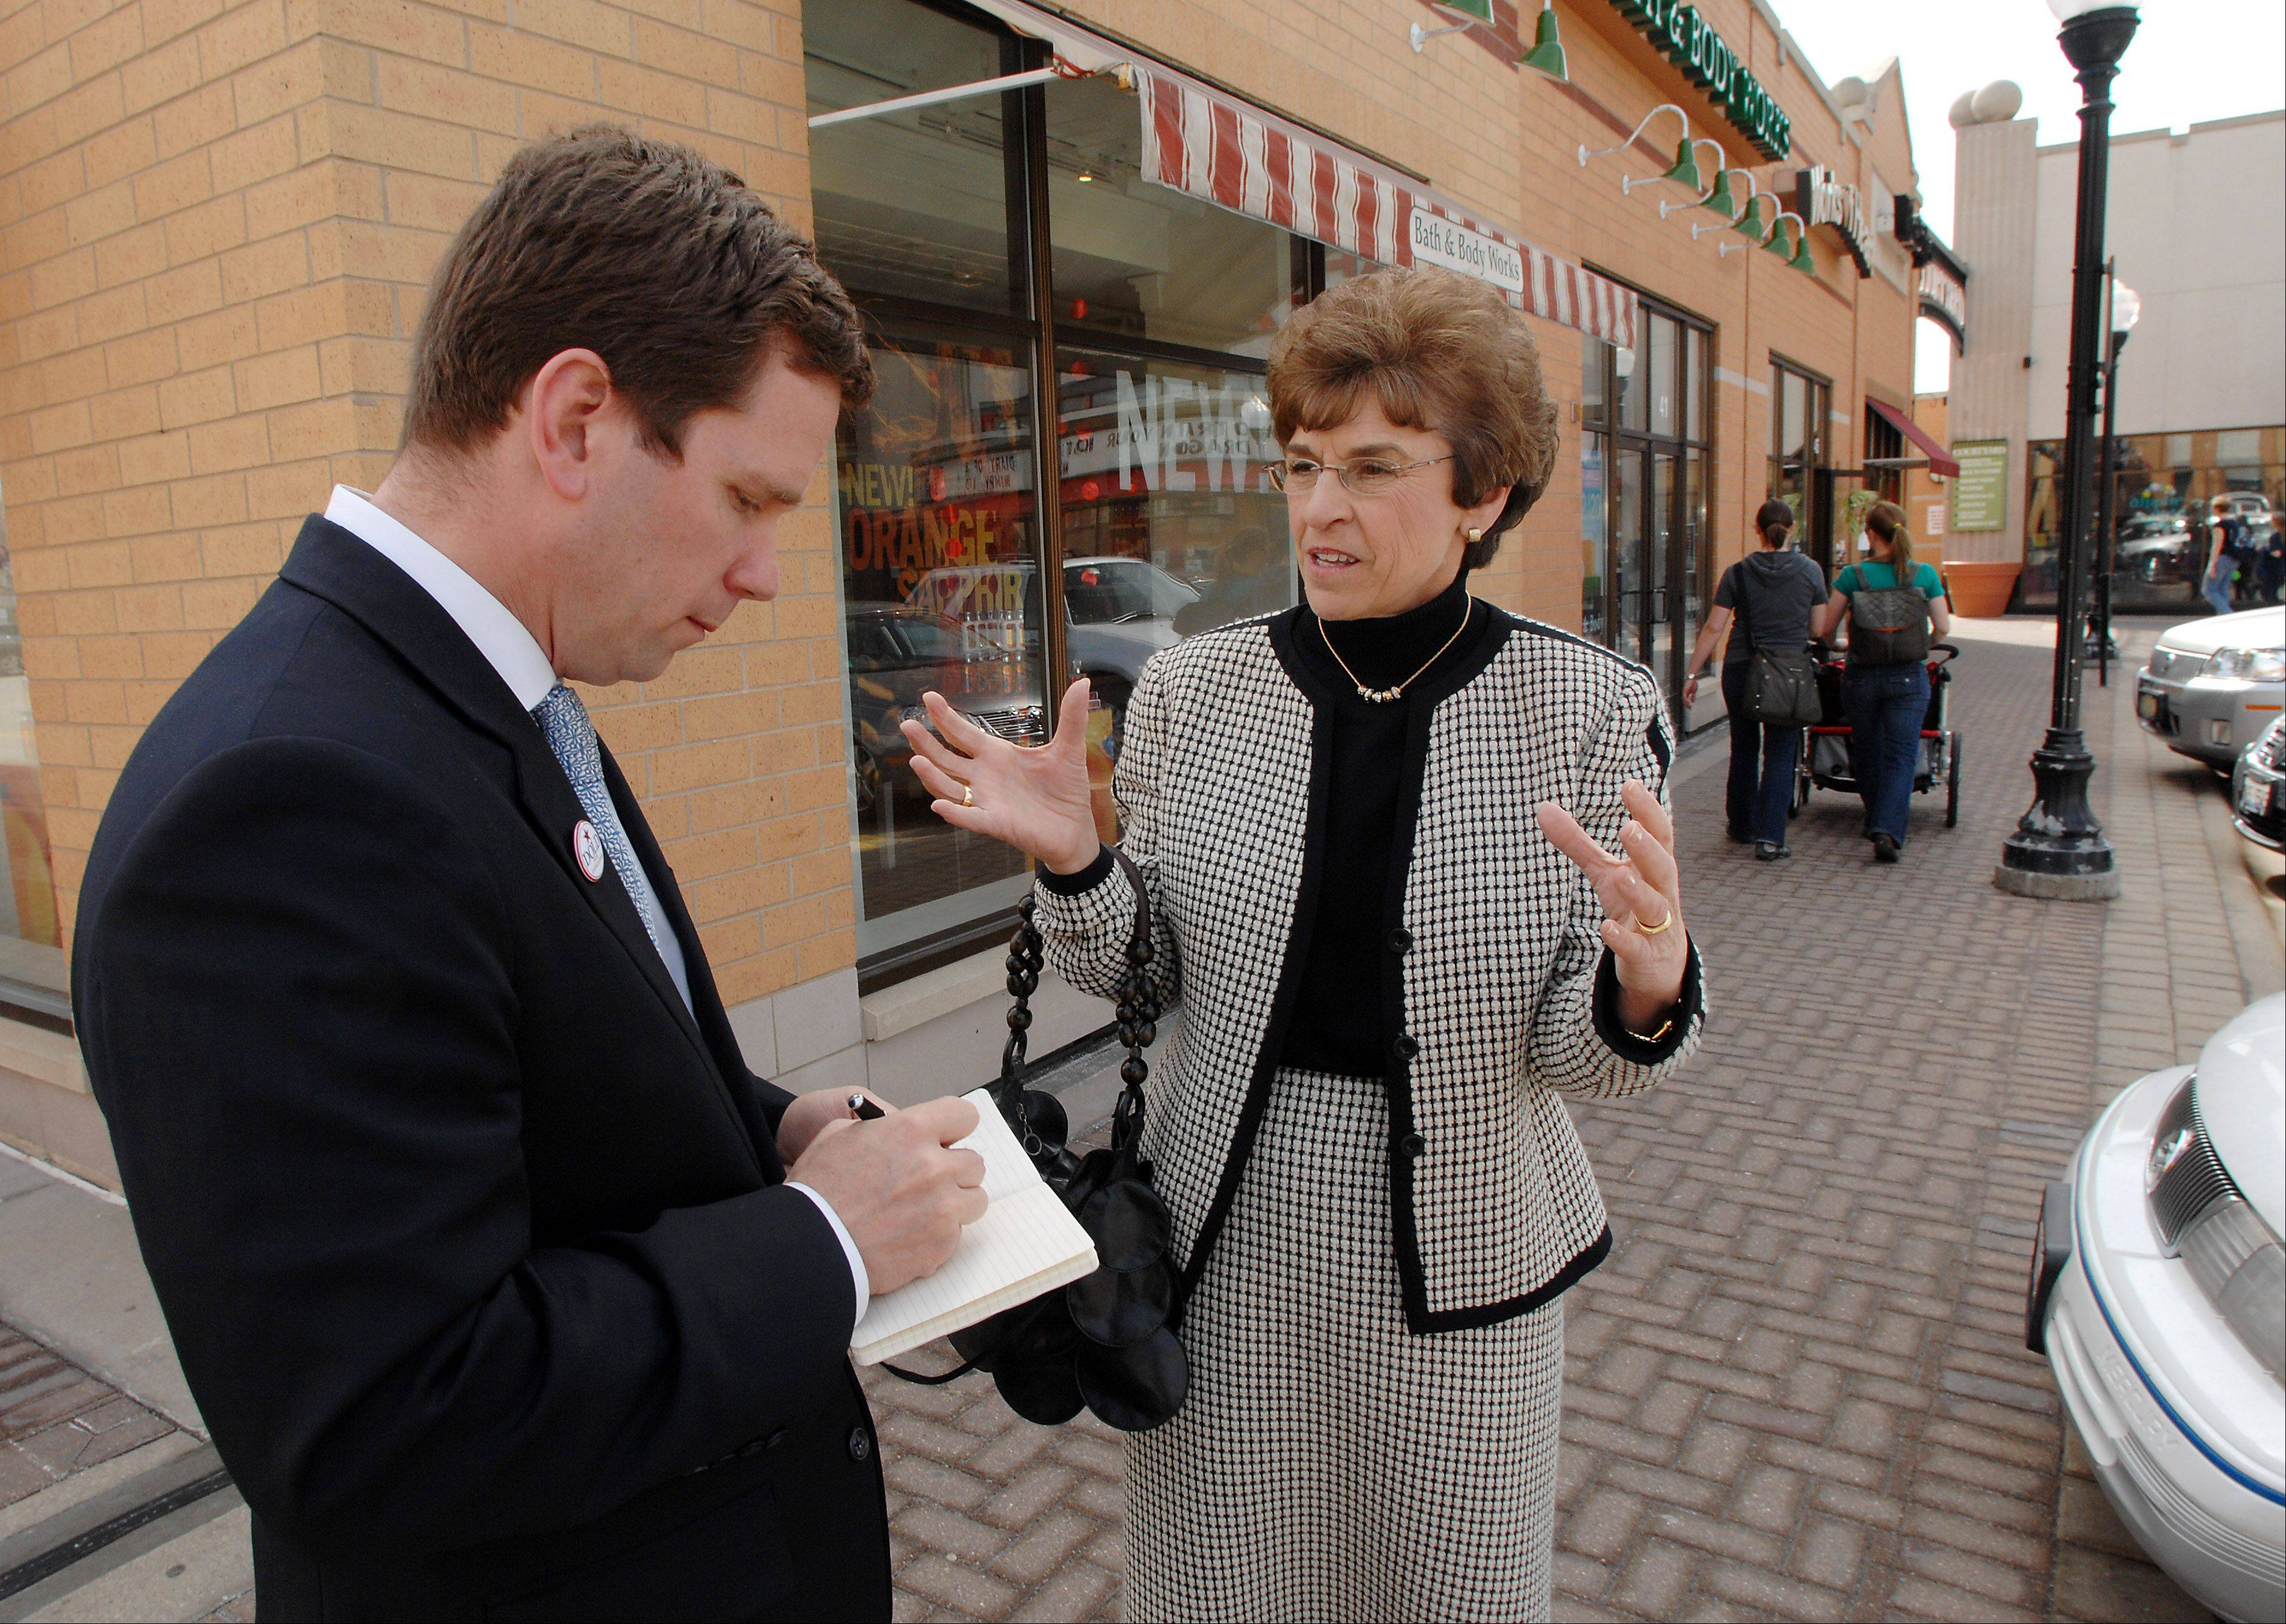 Arlene Mulder gives then-Congressman Bob Dold a tour of downtown Arlington Heights in March 2010, talking with residents and business owners about ways to improve the area.